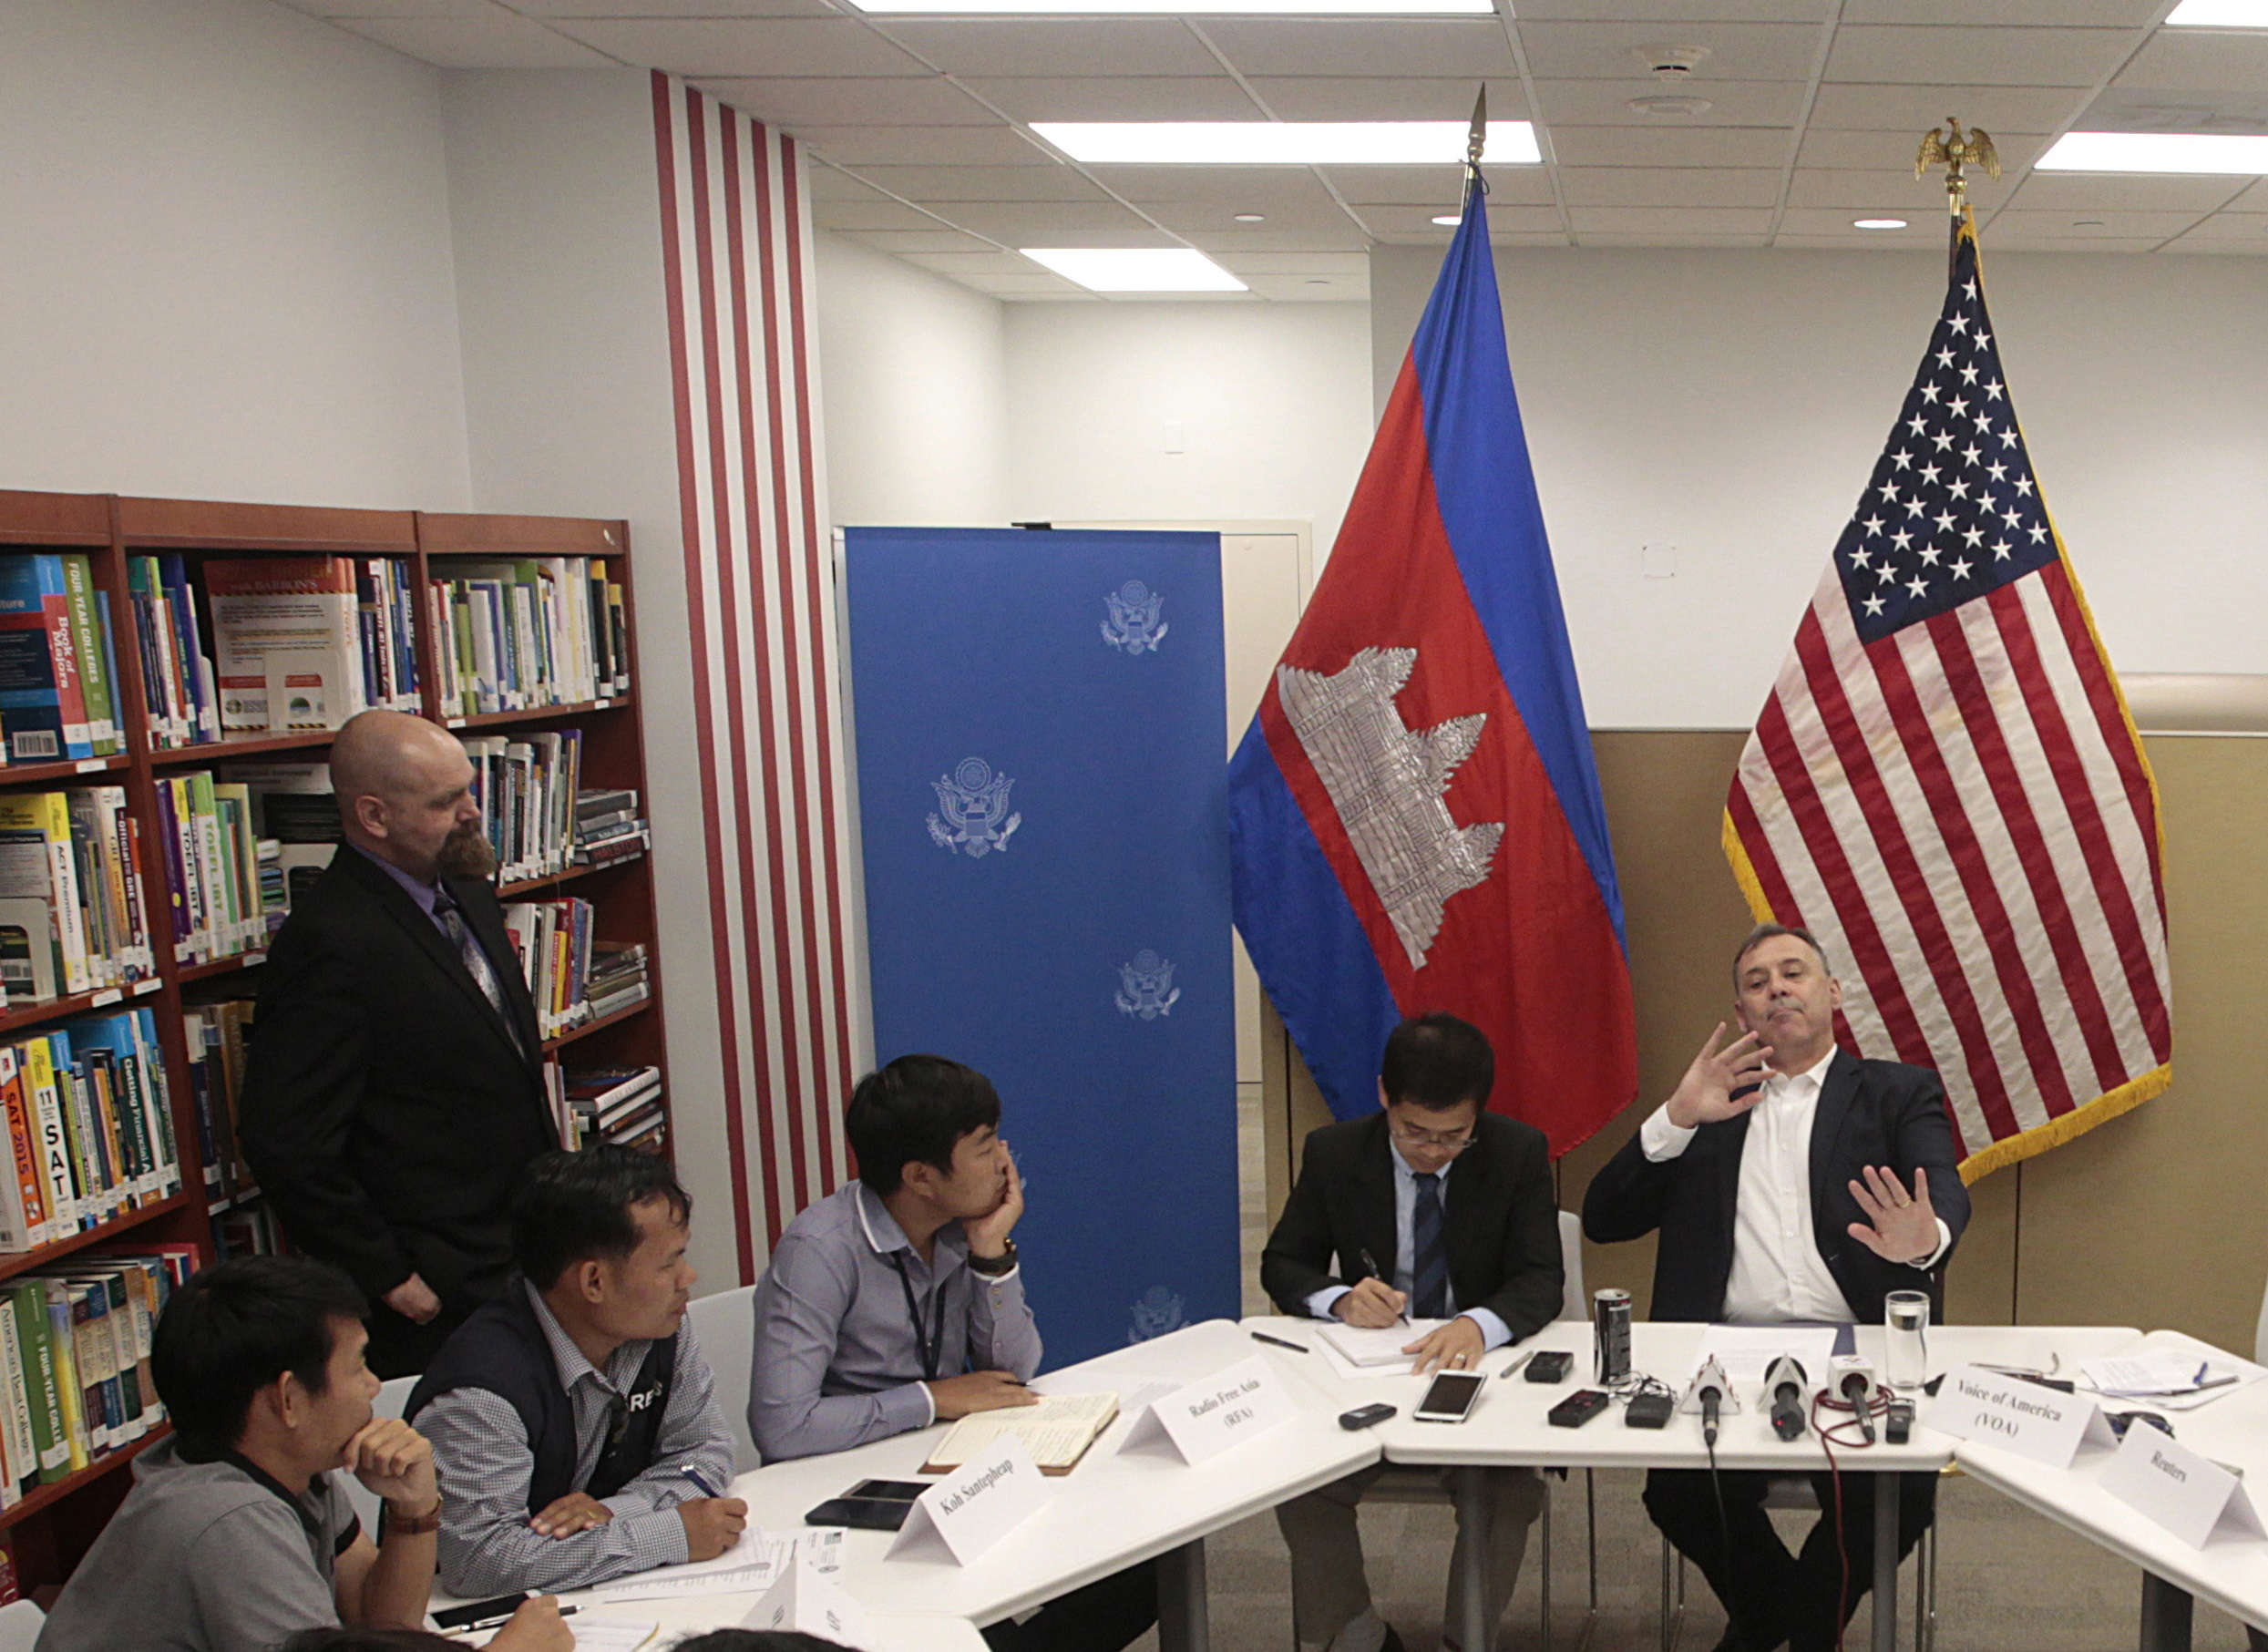 Slide 10 of 35: U.S. Ambassador to Cambodia William Heidt, rear center, gives a press conference at the U.S. Embassy in Phnom Penh, Cambodia, Tuesday, Sept. 12, 2017. Heidt has delivered sharp response to allegations by Prime Minister Hun Sen that Washington is seeking to dislodge his government, denying the allegations and warning that Cambodia is doing itself damage international with its anti-American campaign. (AP Photo/Heng Sinith)